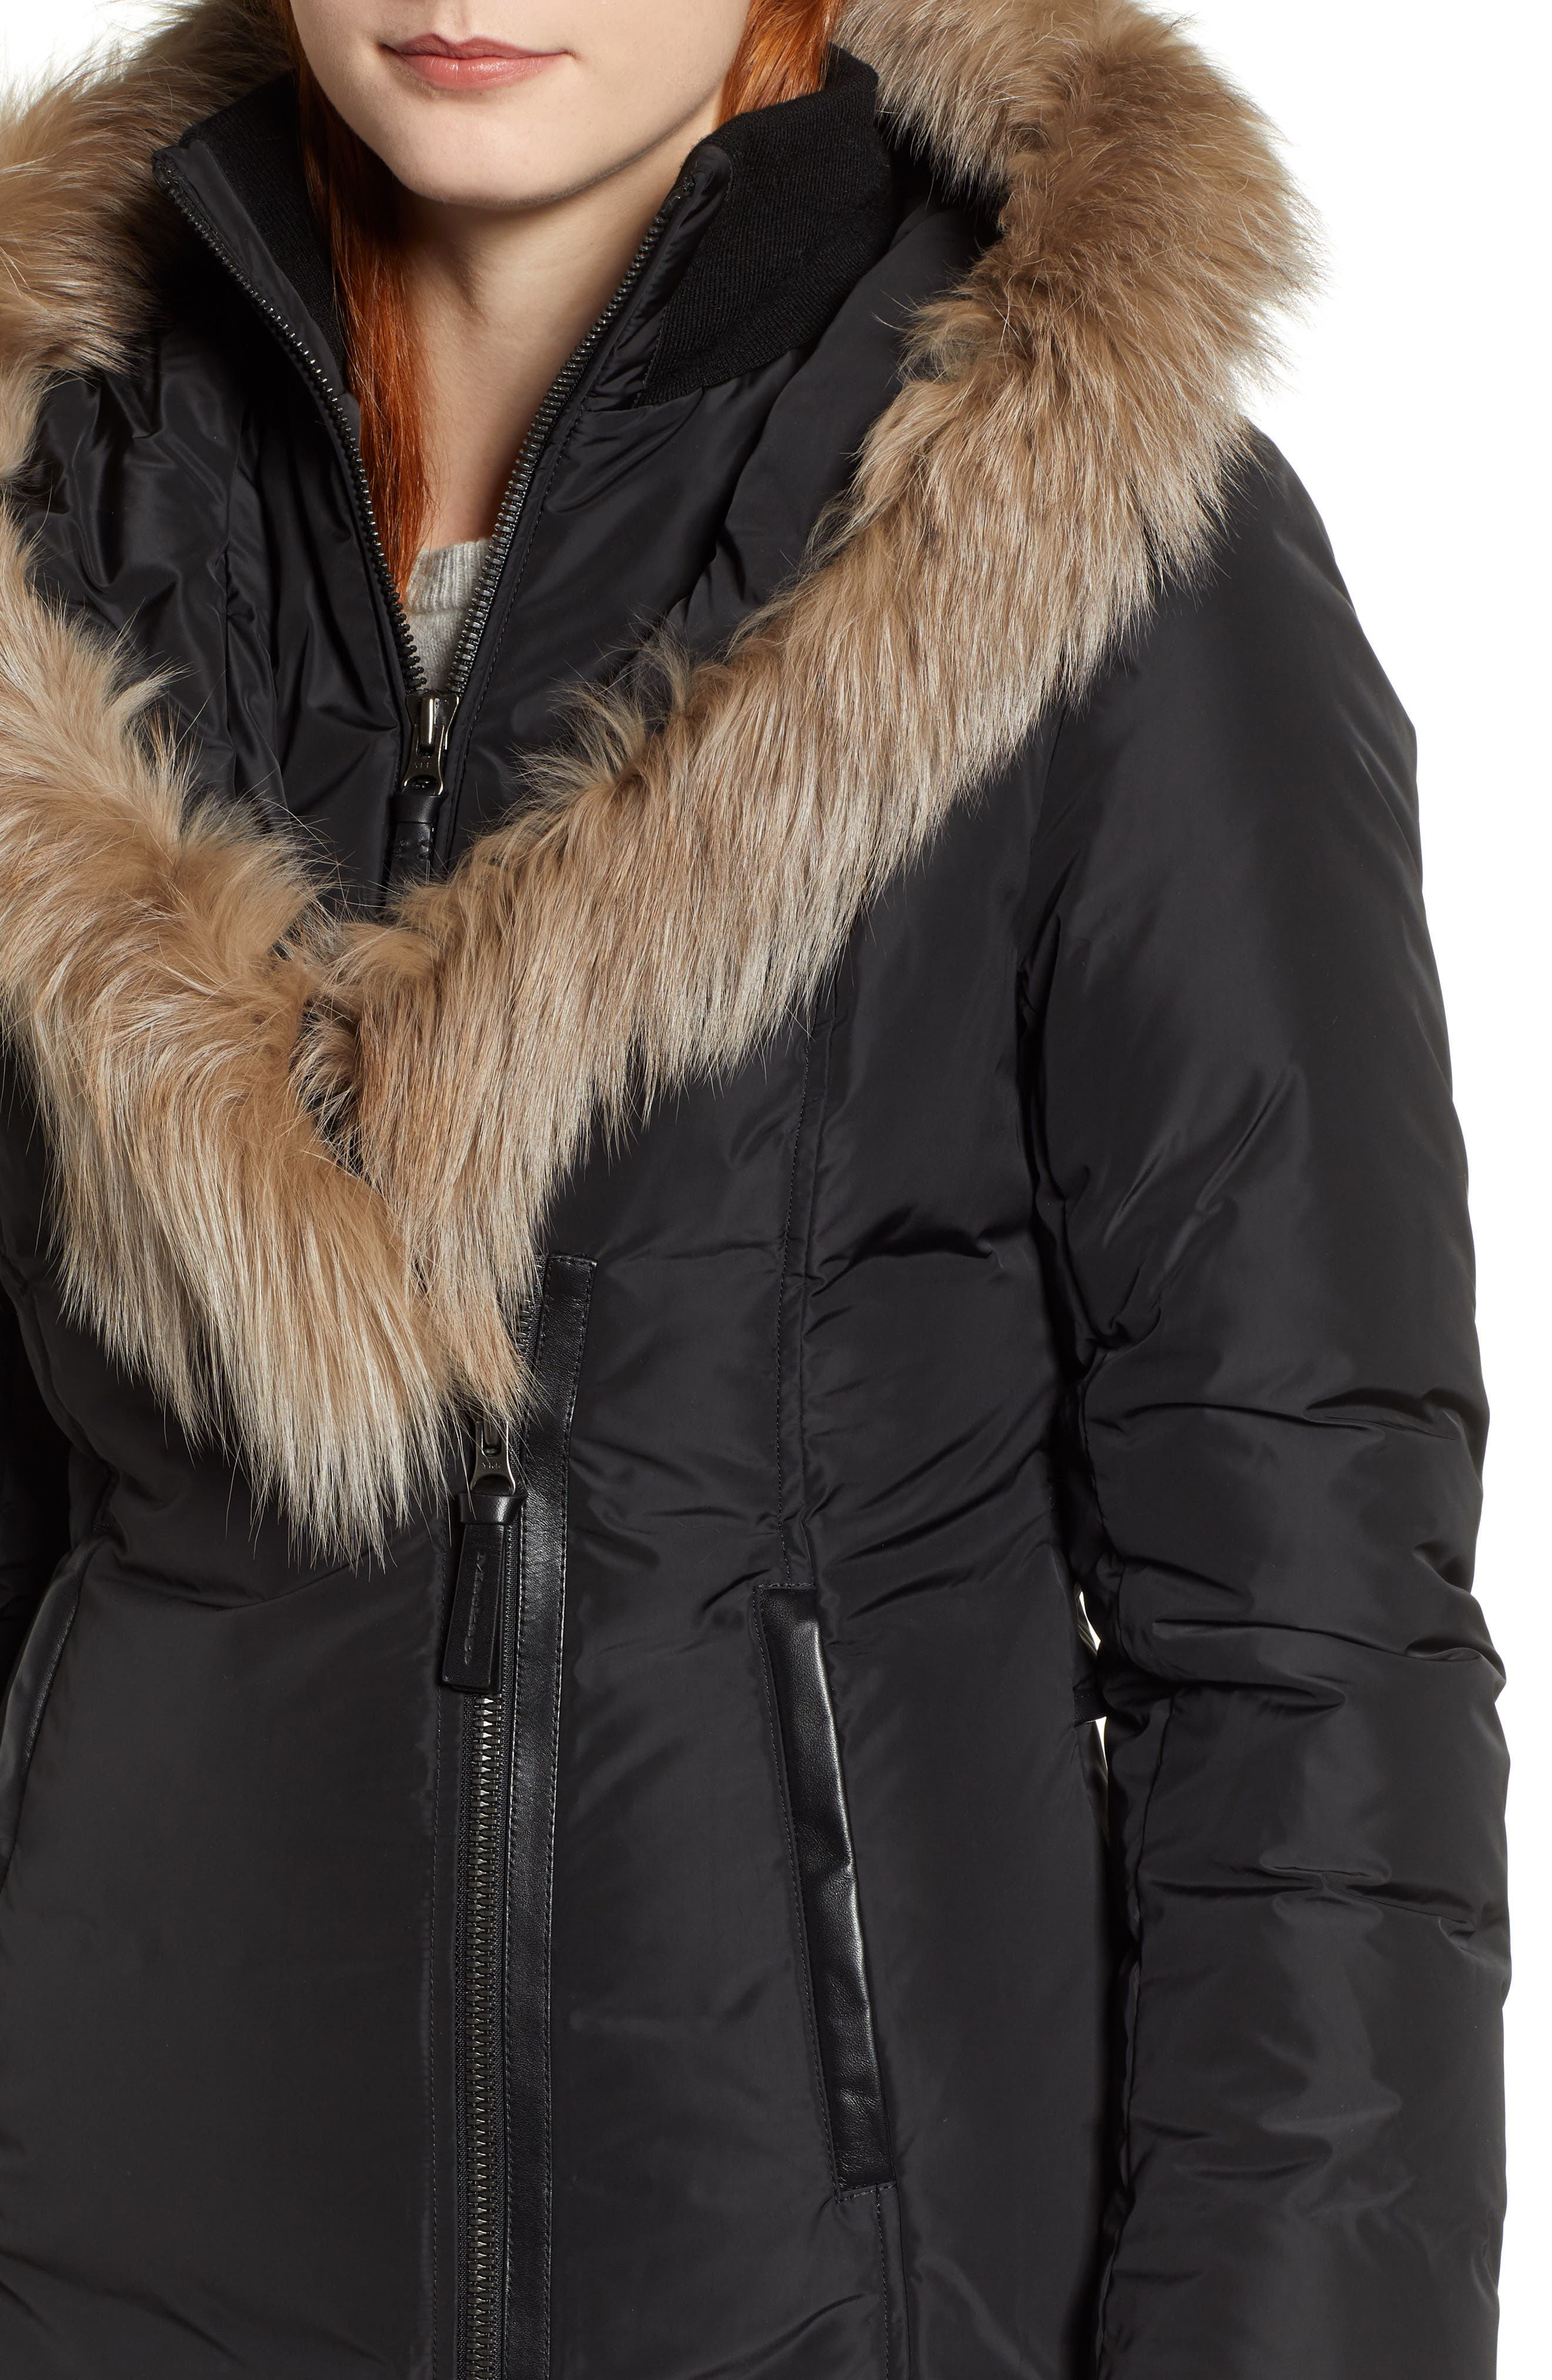 MACKAGE,                             800 Fill Power Down Coat with Genuine Fox Fur Trim,                             Alternate thumbnail 4, color,                             001